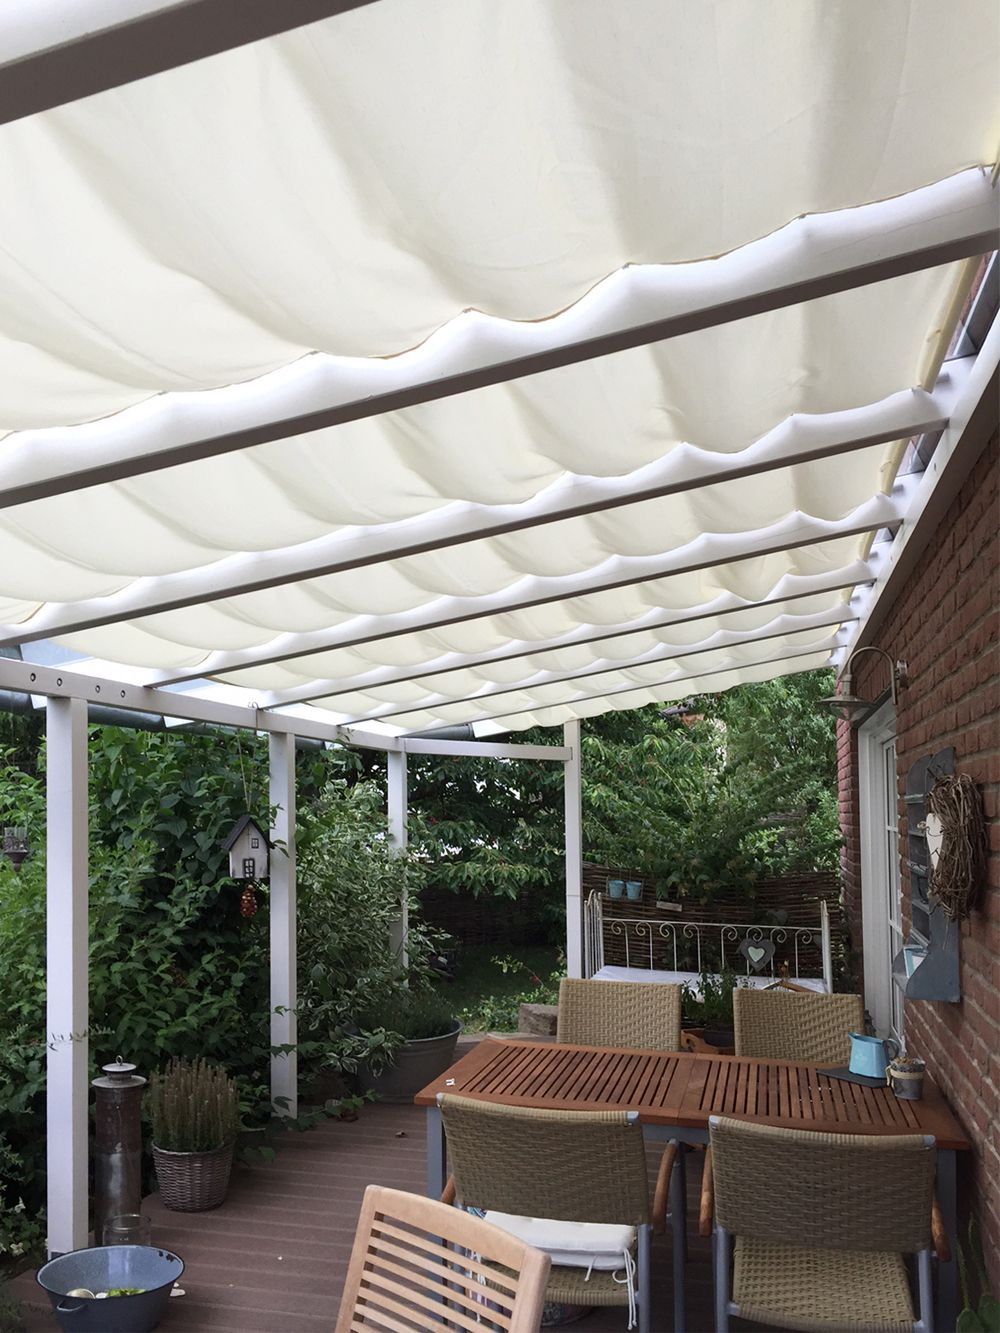 Patio roof screening | Shutters and Screens | Pinterest ...